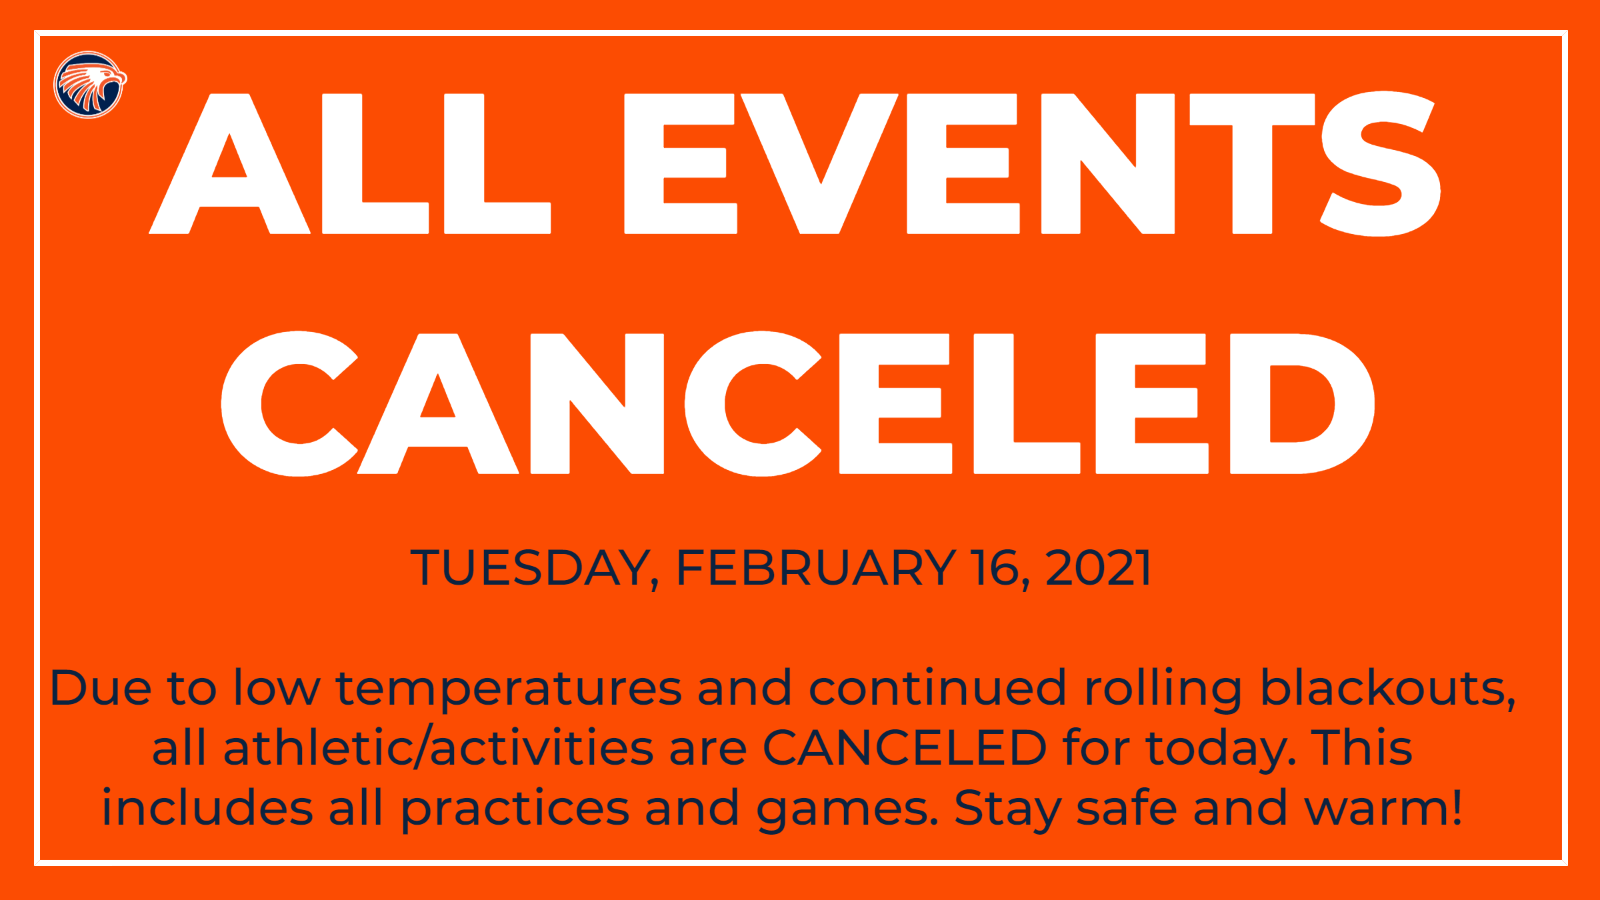 All Athletic/Activities CANCELED for Today (2/16/2021)